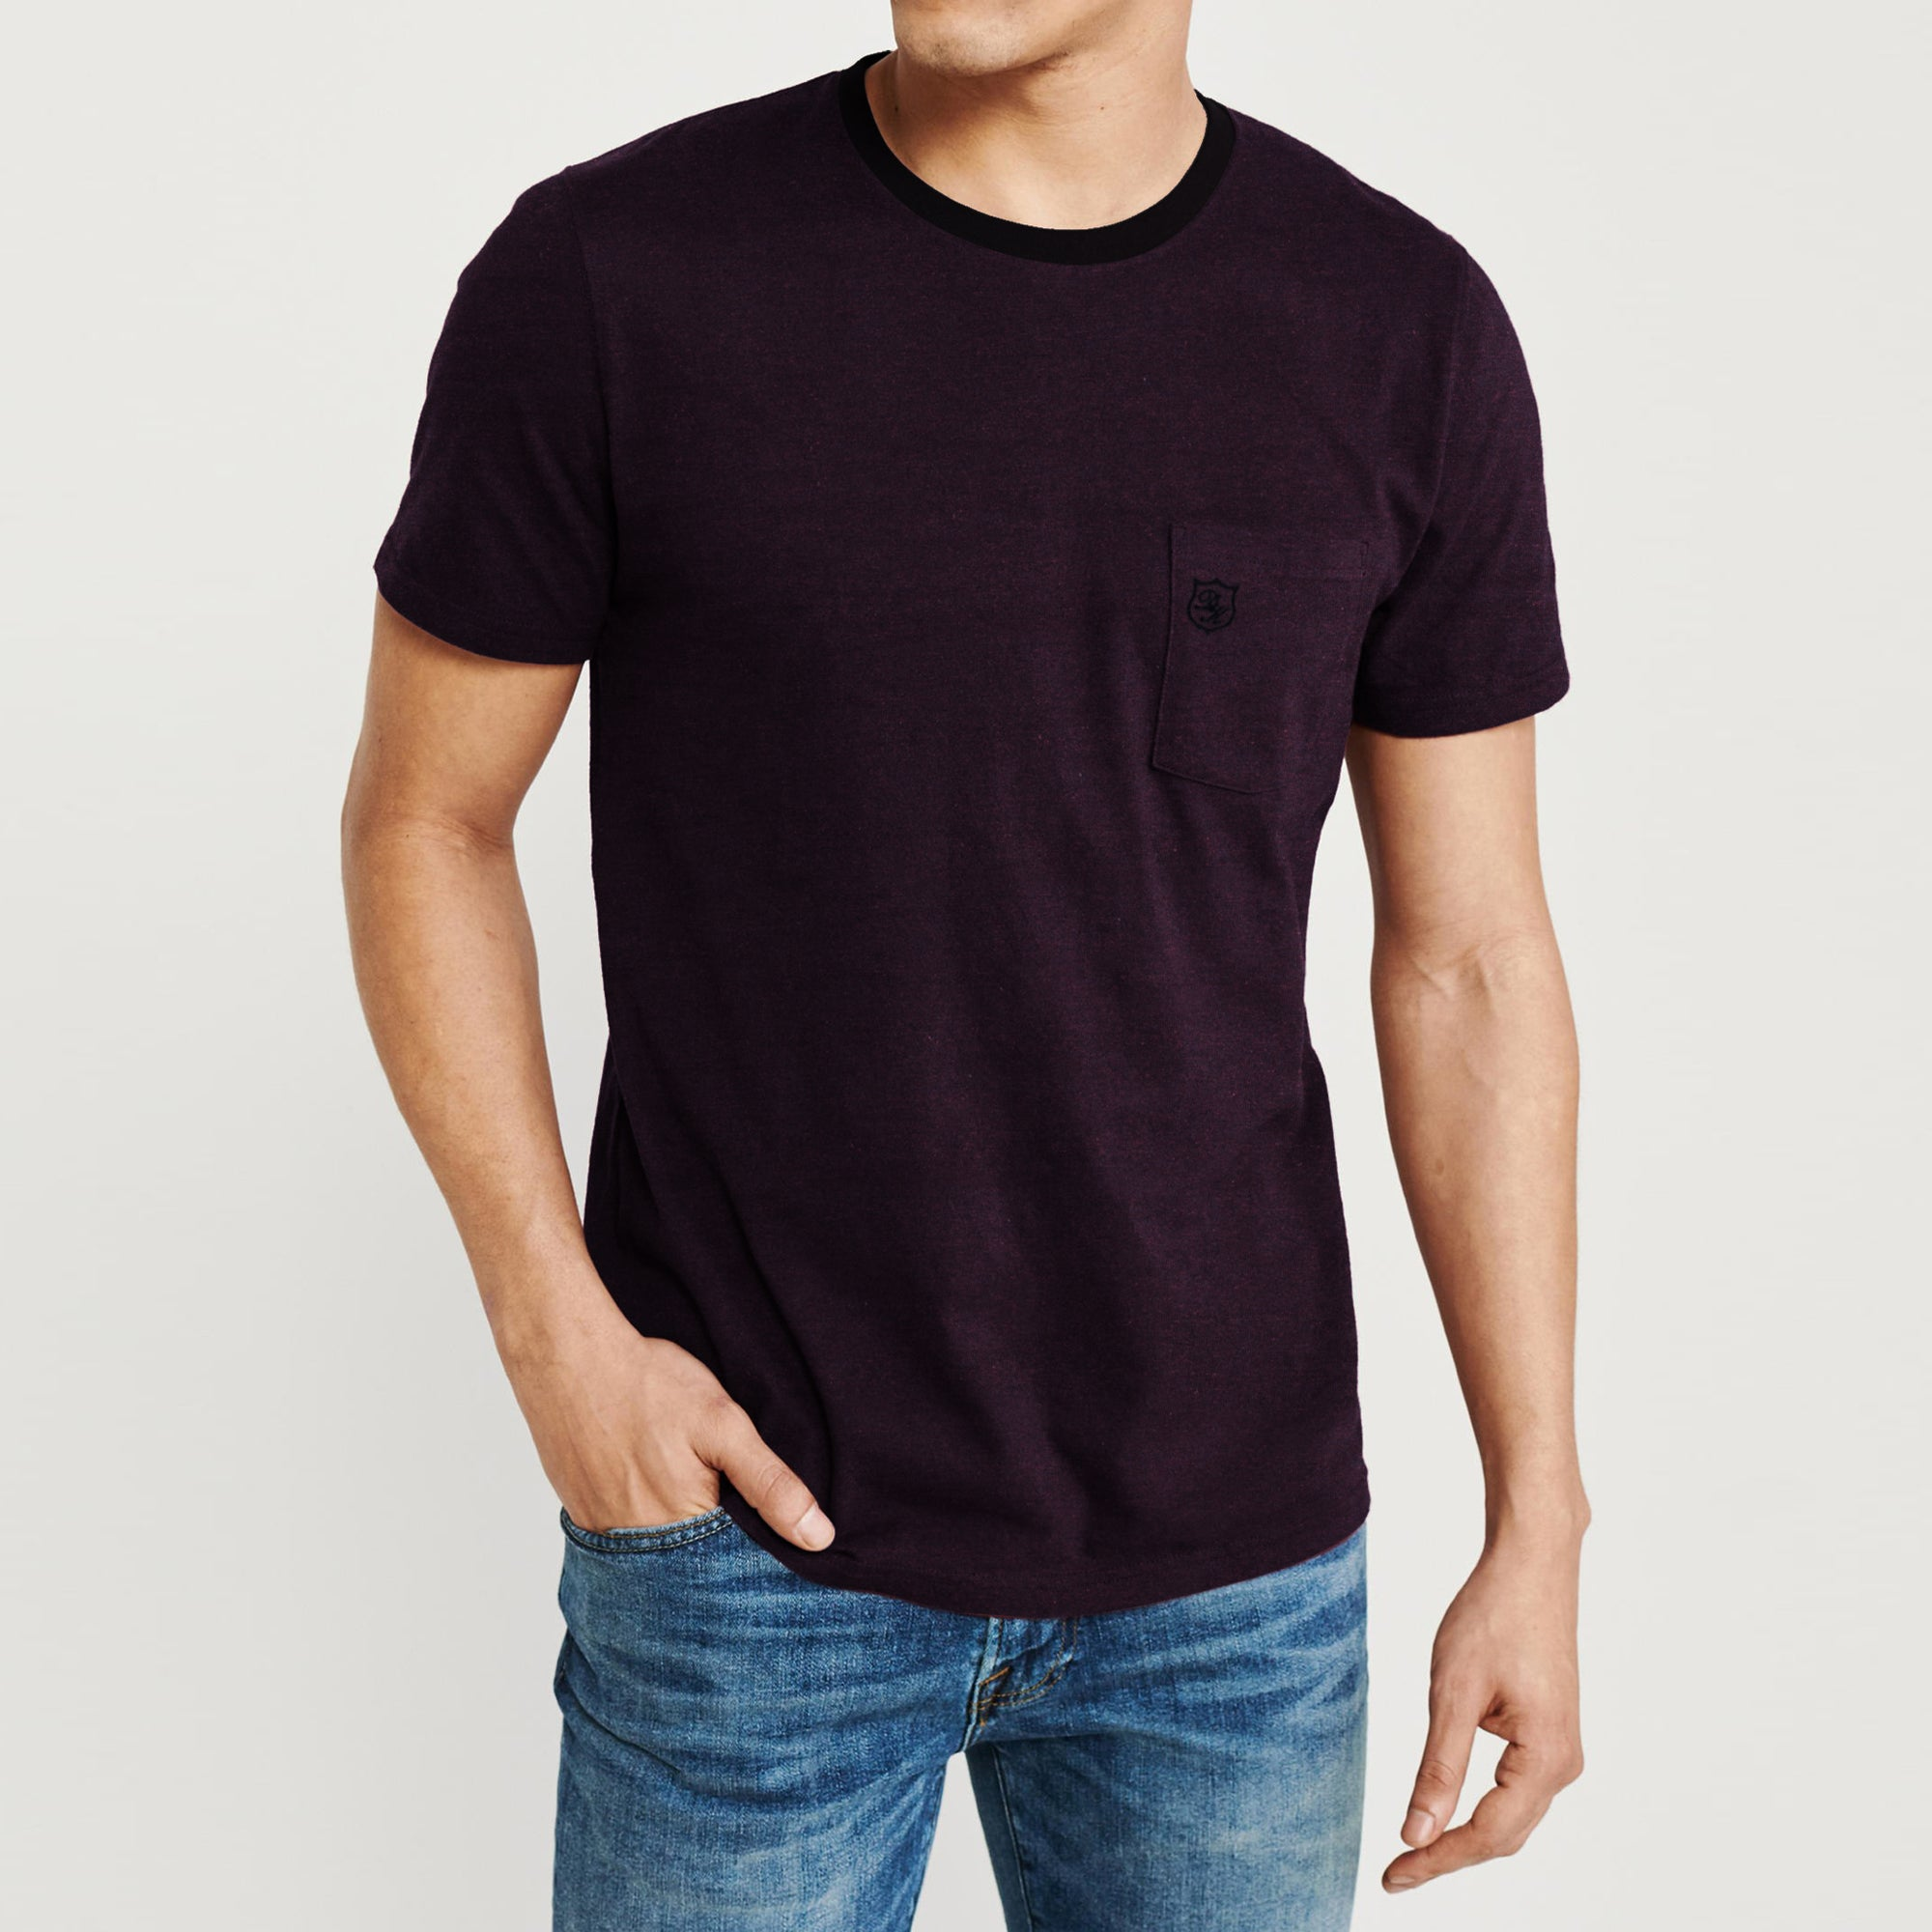 Drift King Crew Neck Single Jersey Tee Shirt For Men-Dark Purple Melange-BE8337